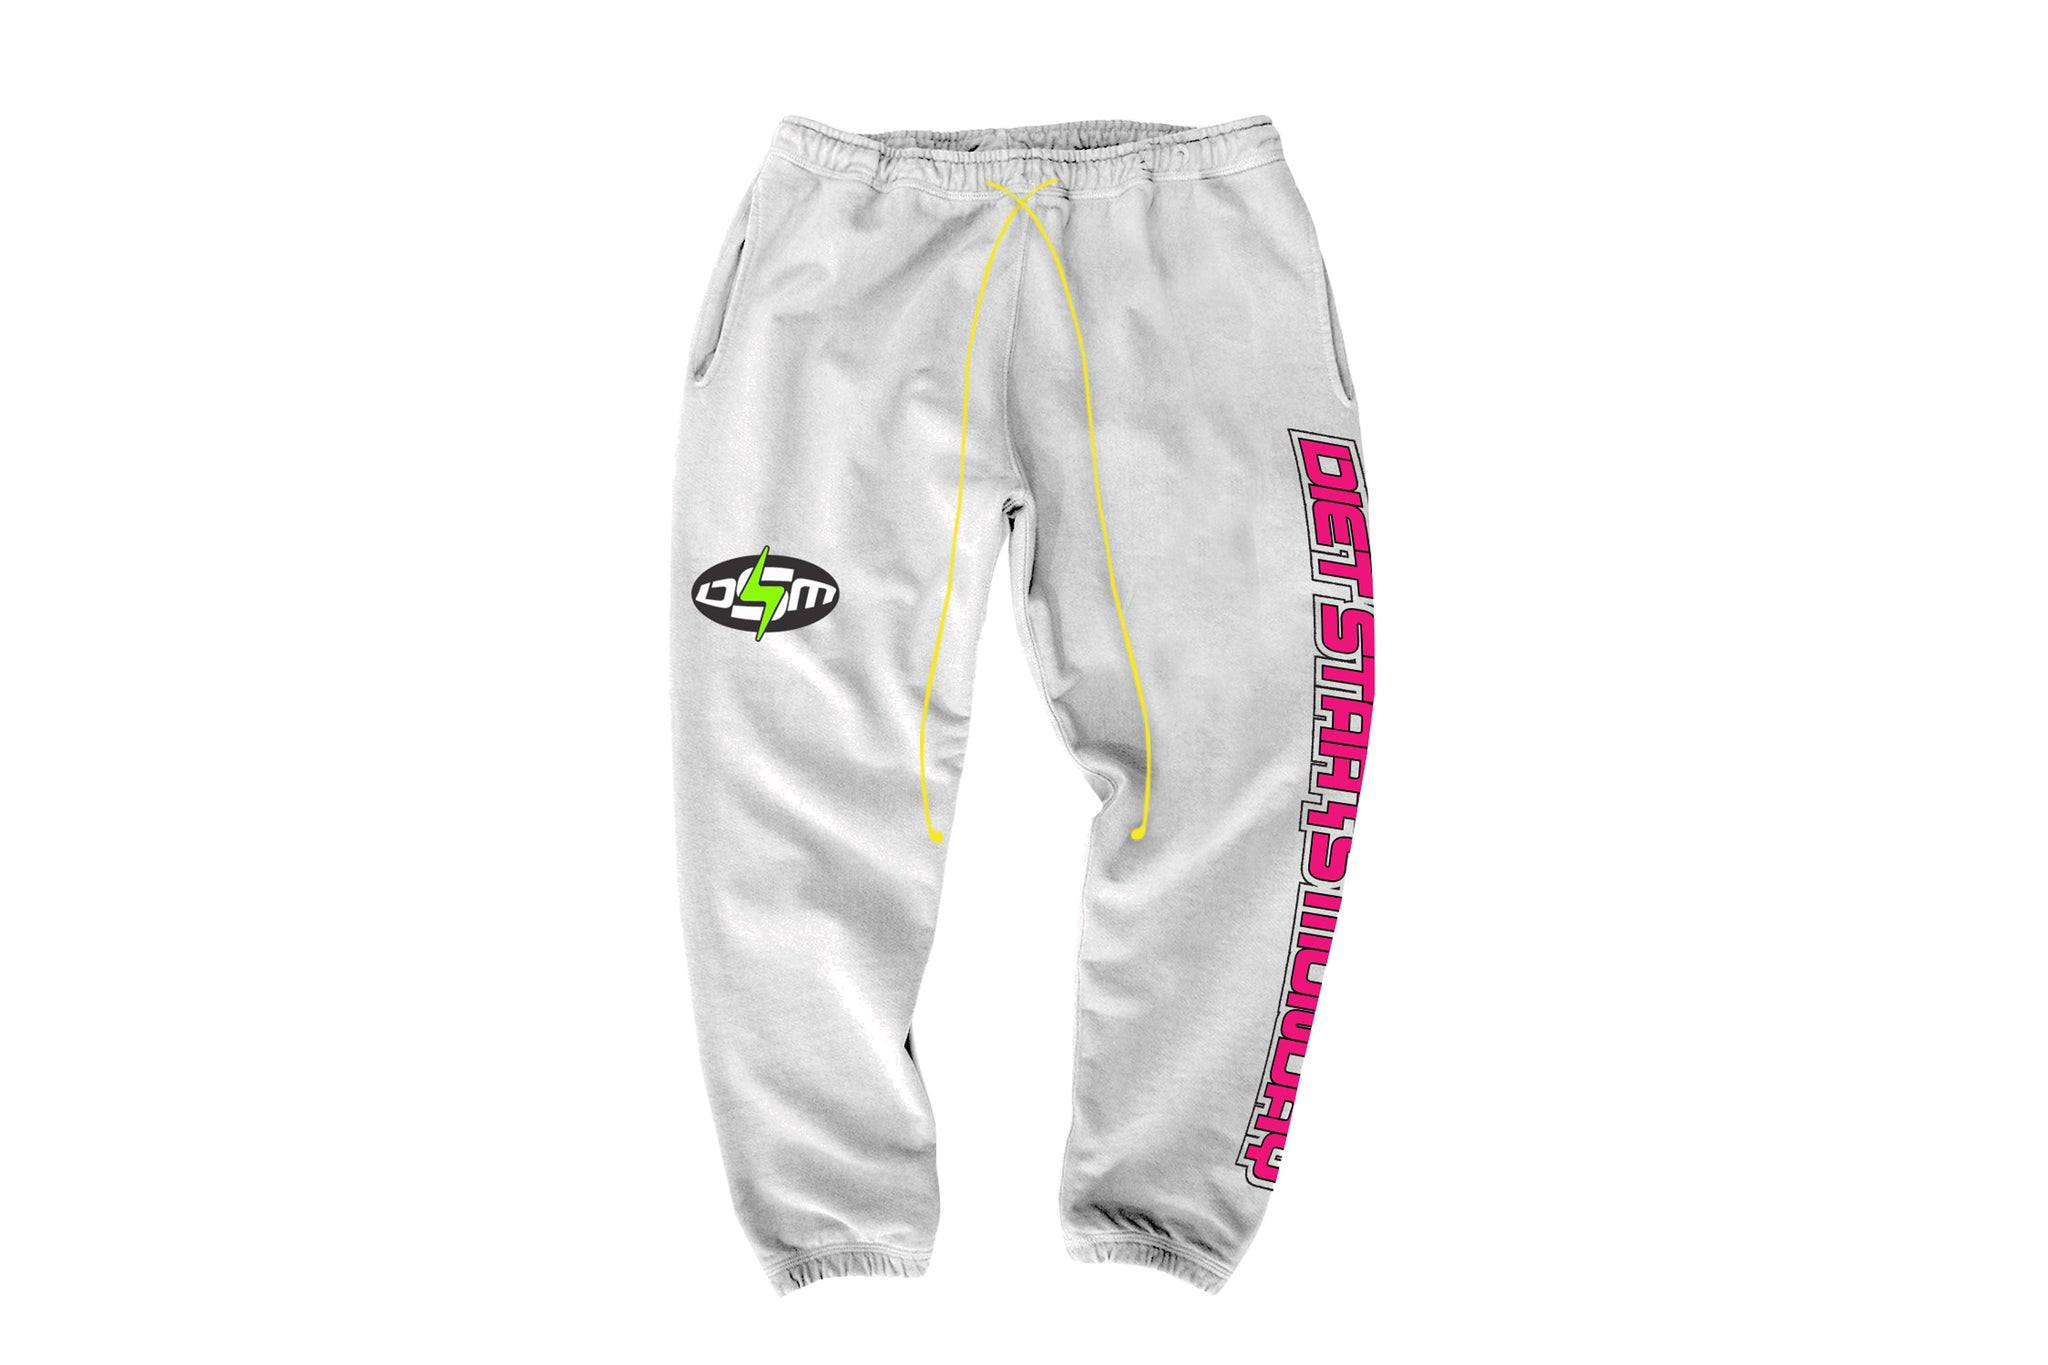 DSM Bolt Sweats - White